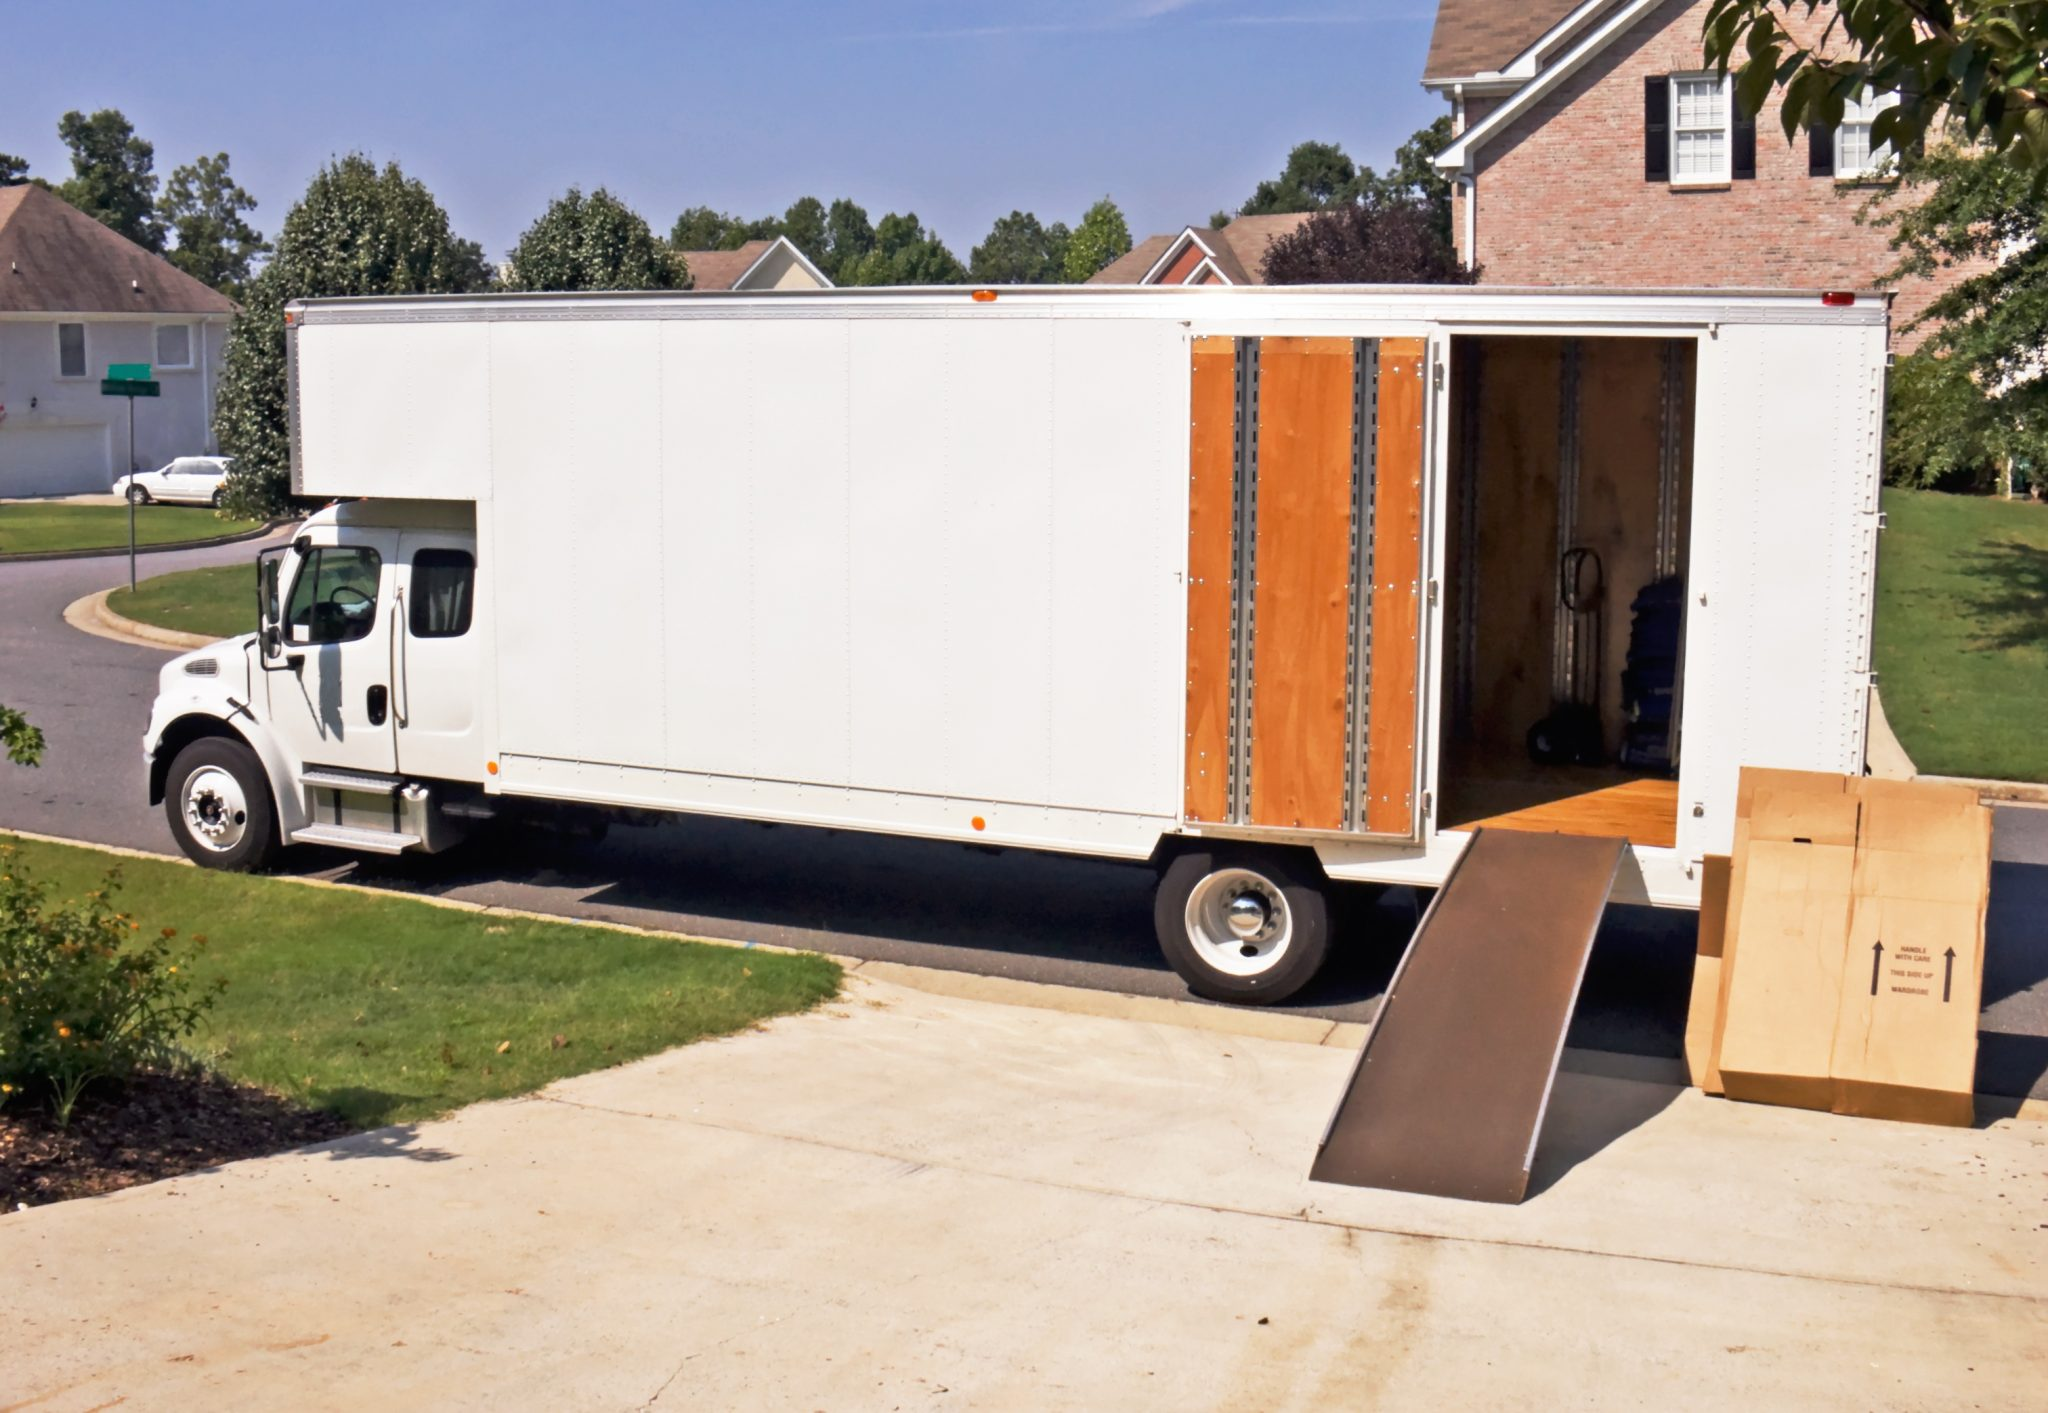 Few Reasons to Hire Professional Movers